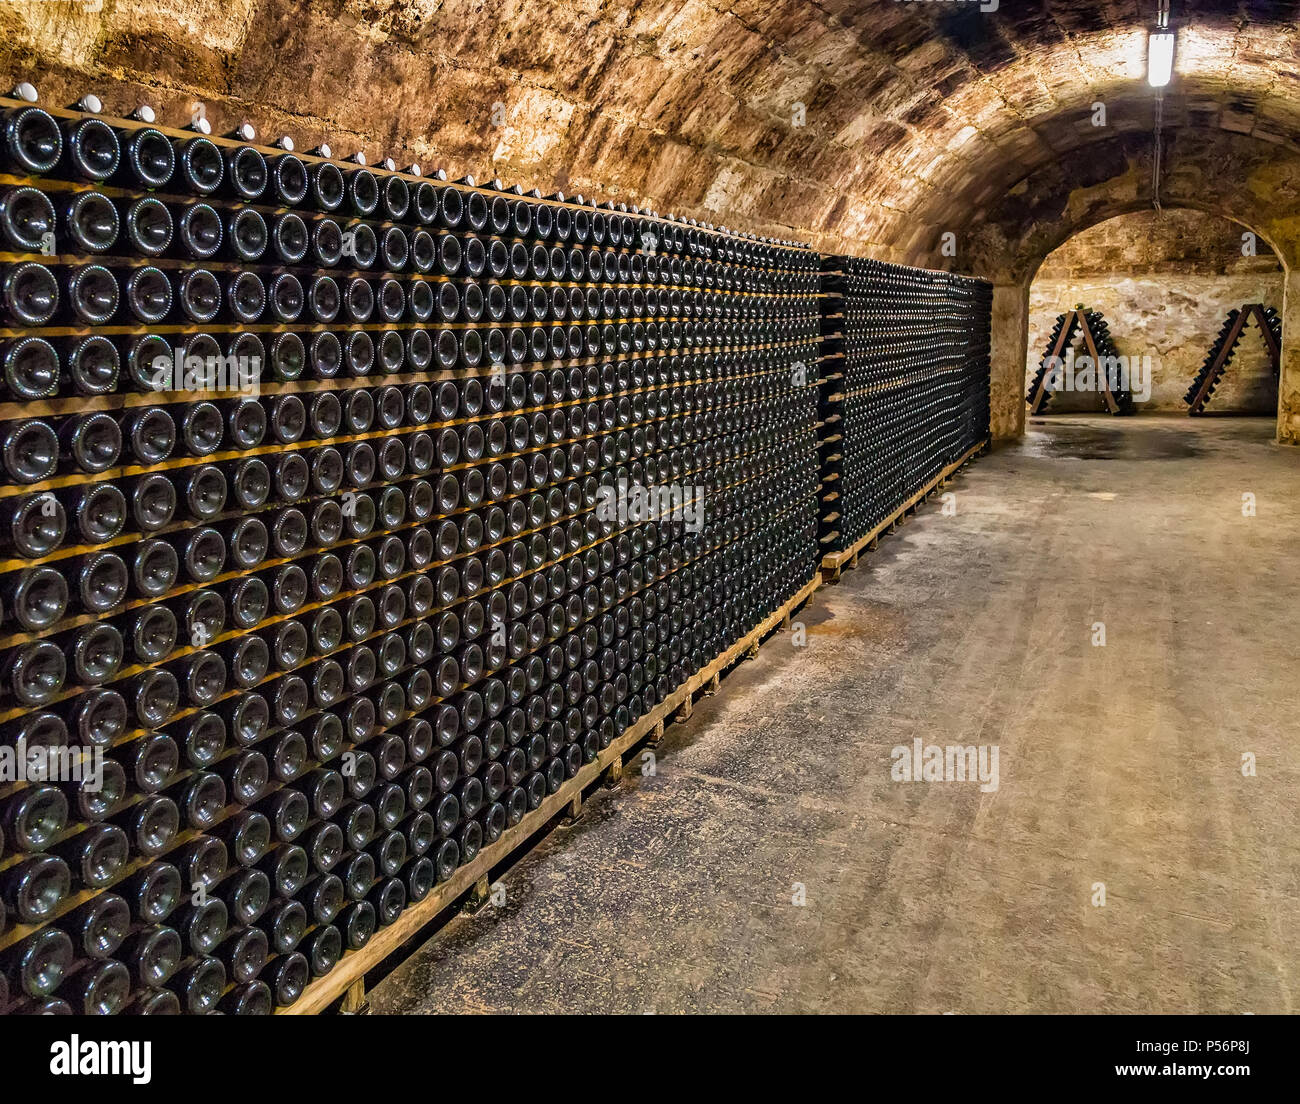 Sparkling wine cellar of famous Hungarian Törley Champagne Factory.Törley sparkling wines dates back to almost 150 years, produces 10-12 million bottl - Stock Image